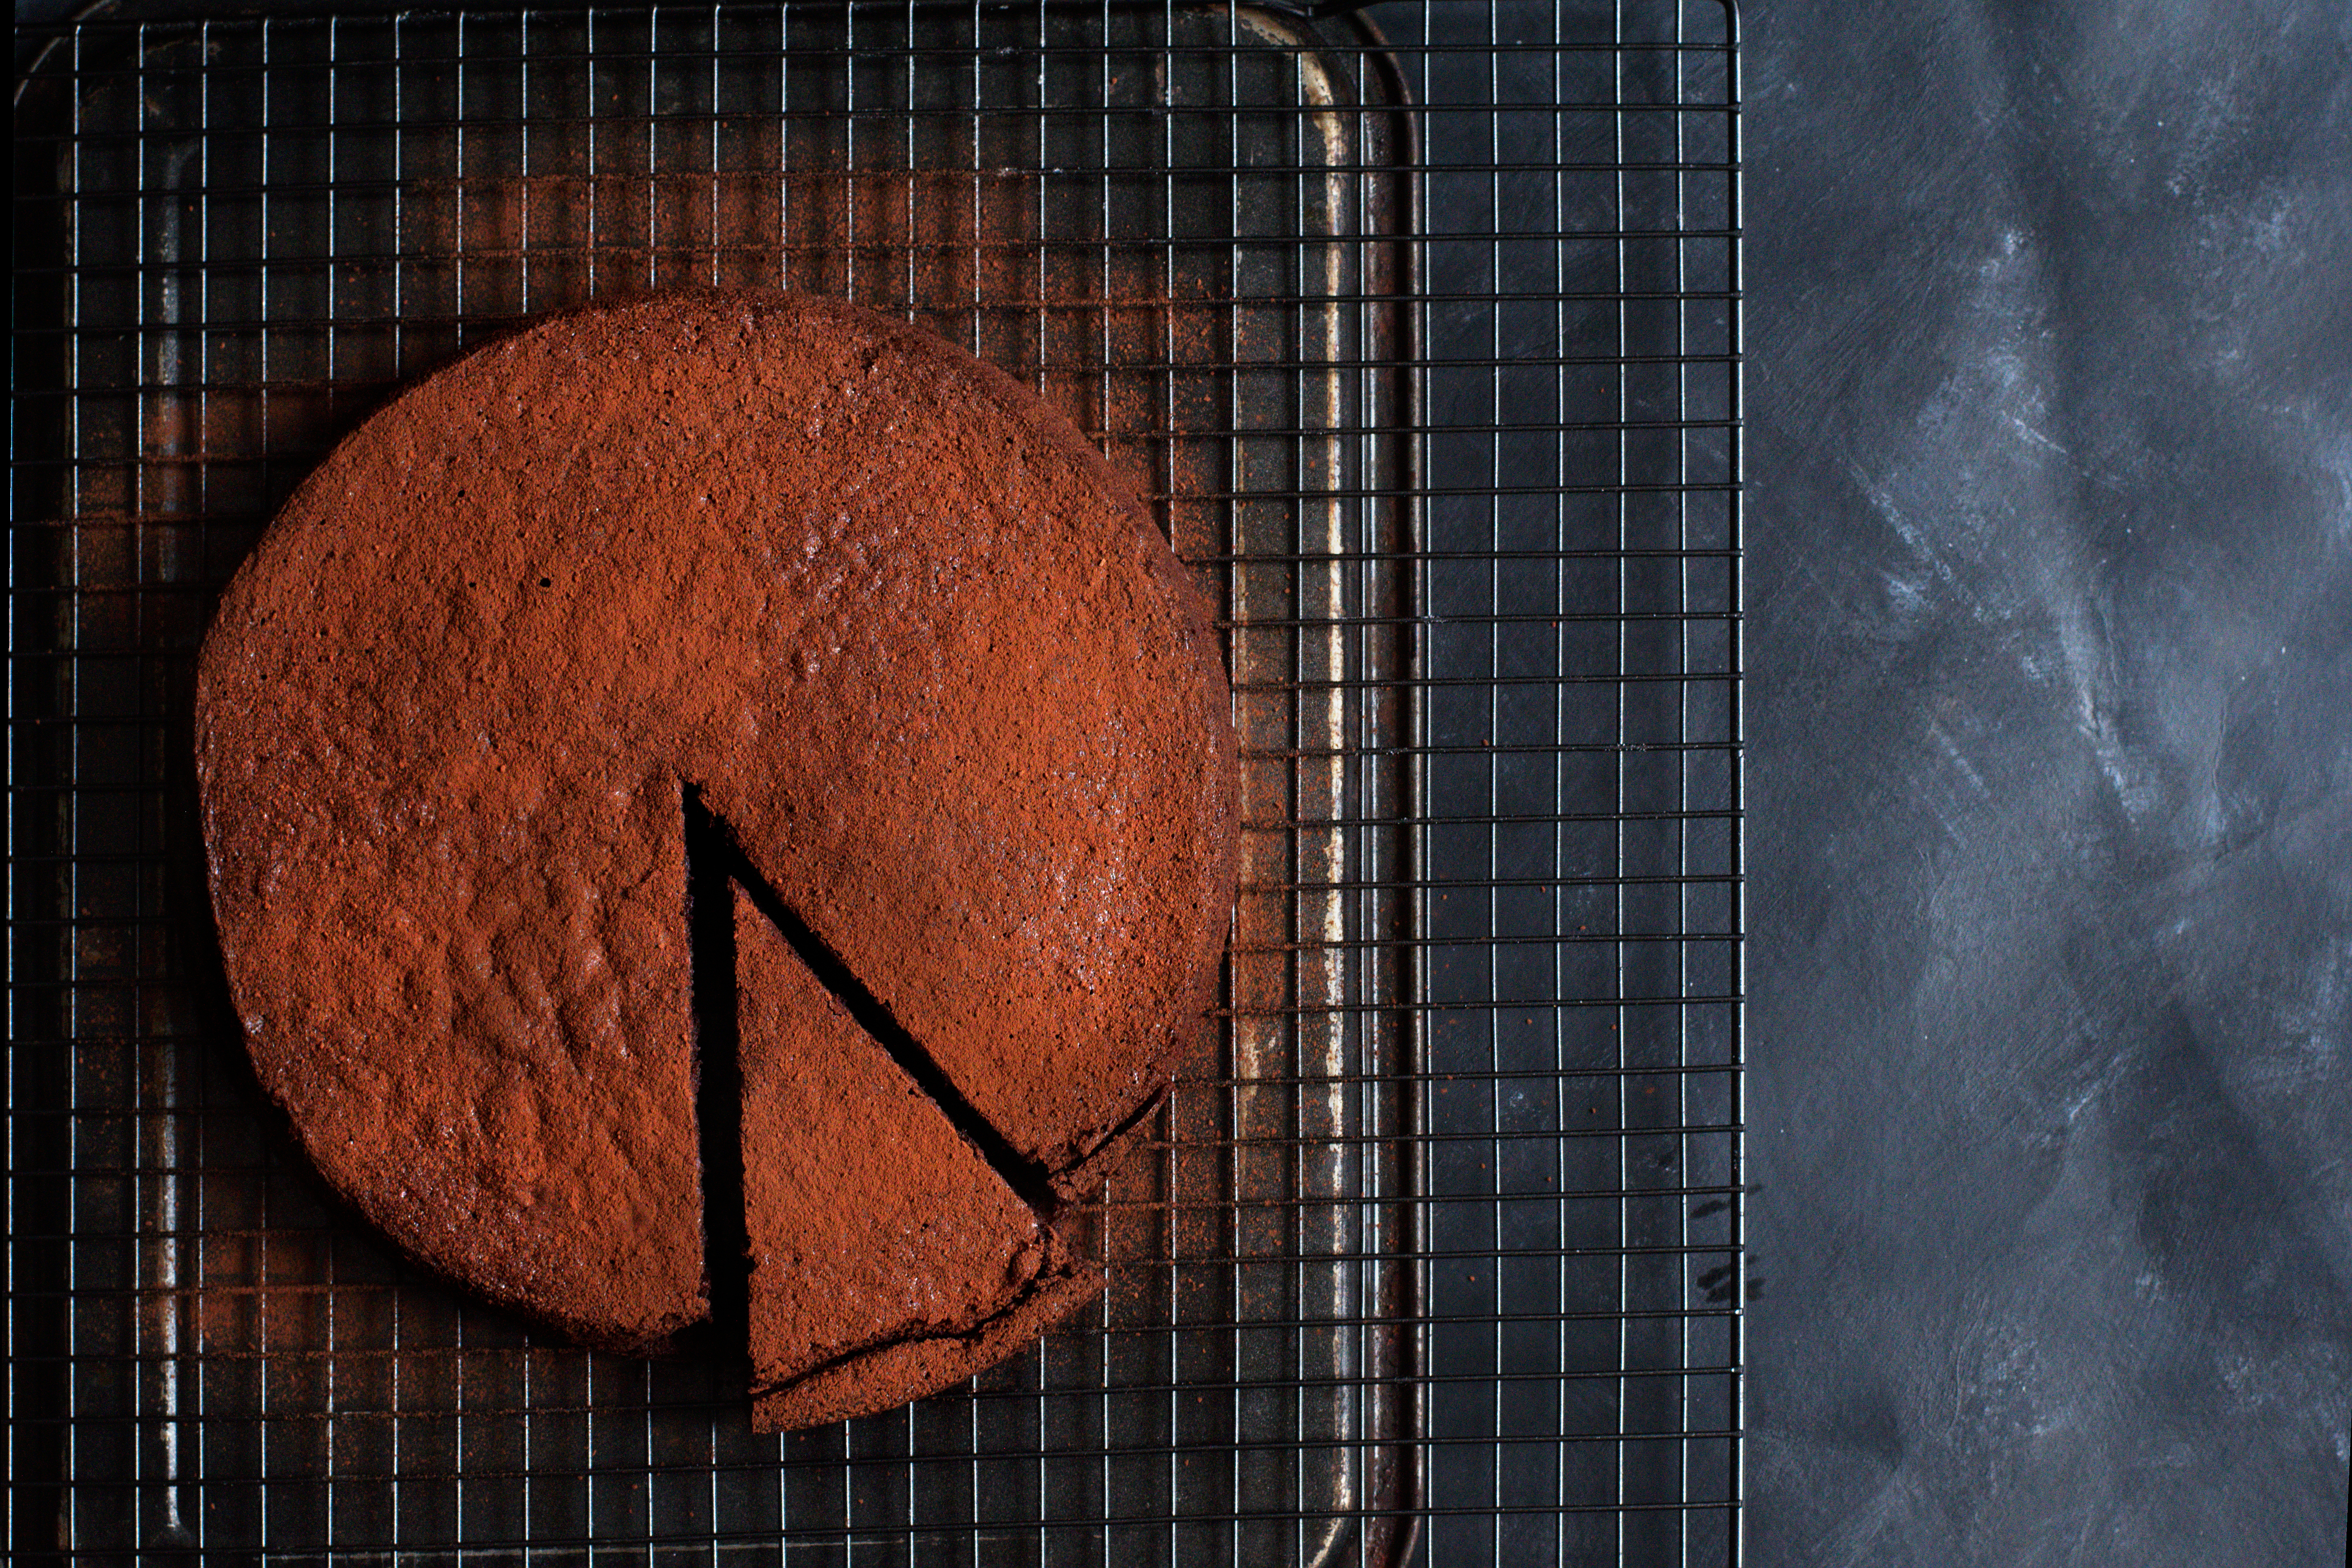 Chocolate olive oil cake from above